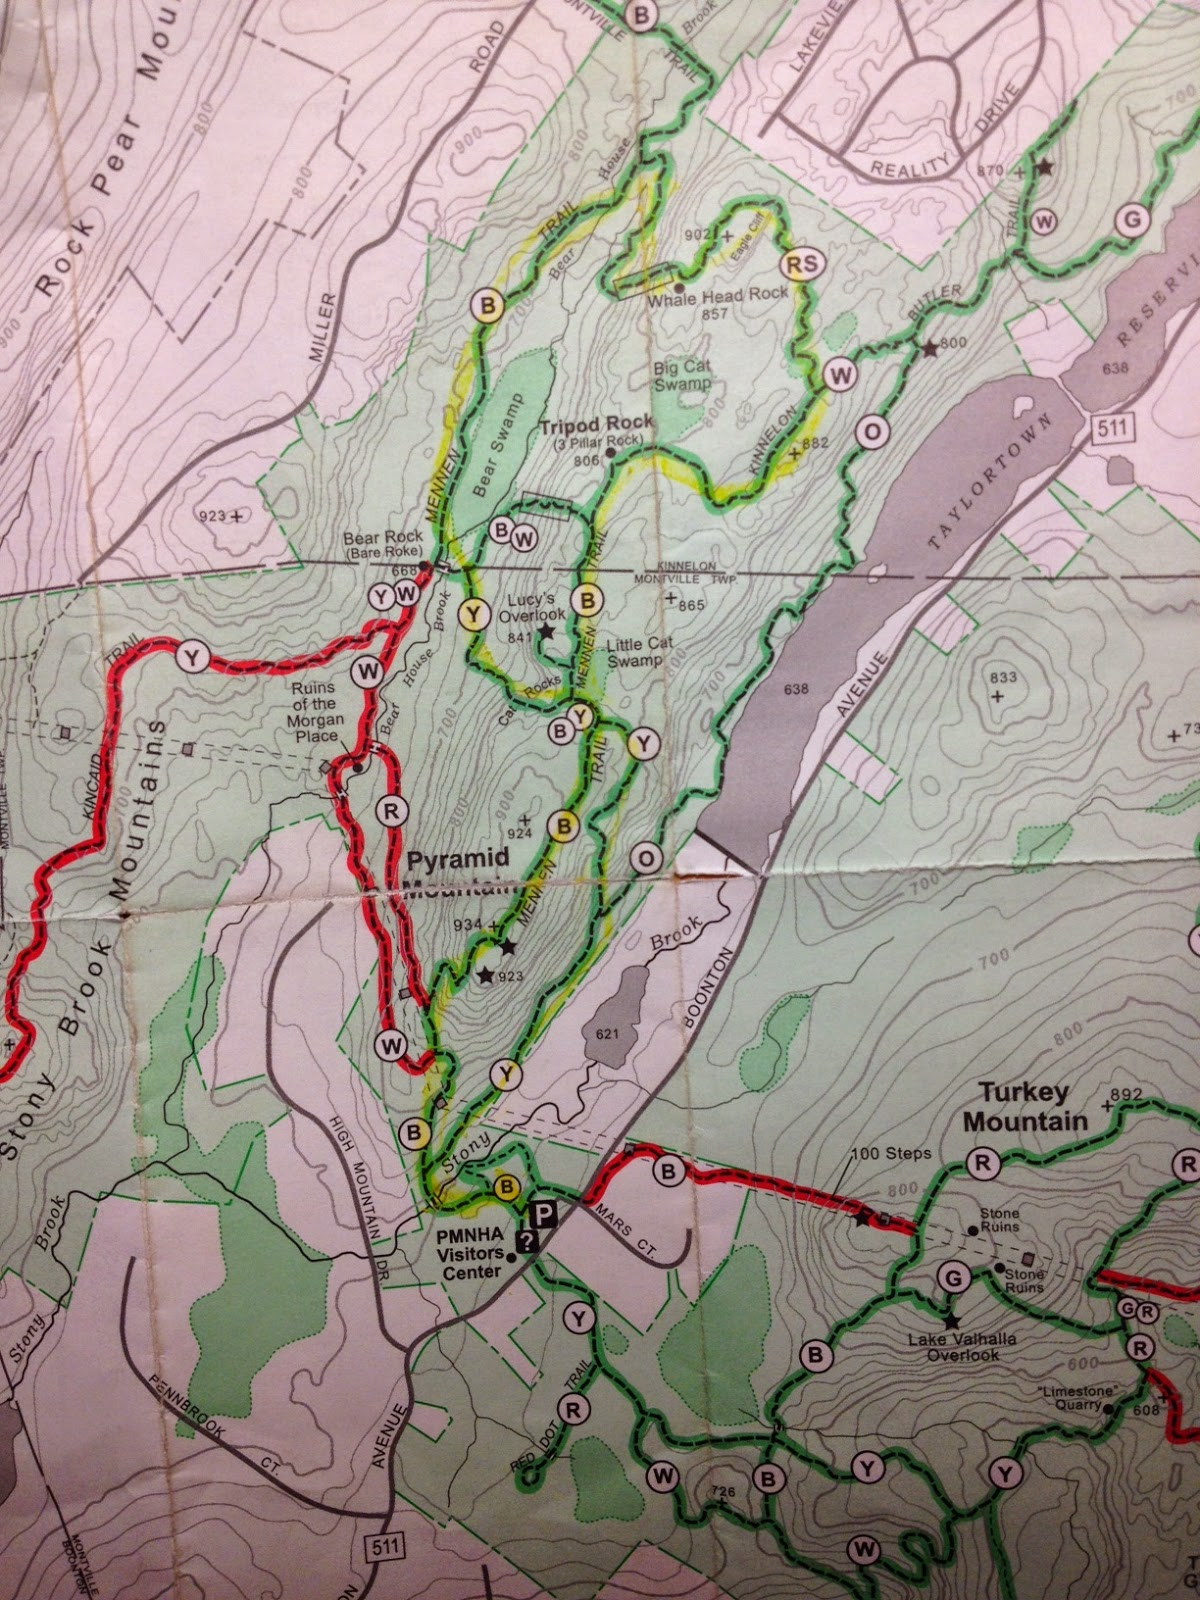 Pyramid Mountain Trail Map - 5 mile loop highlighted in yellow